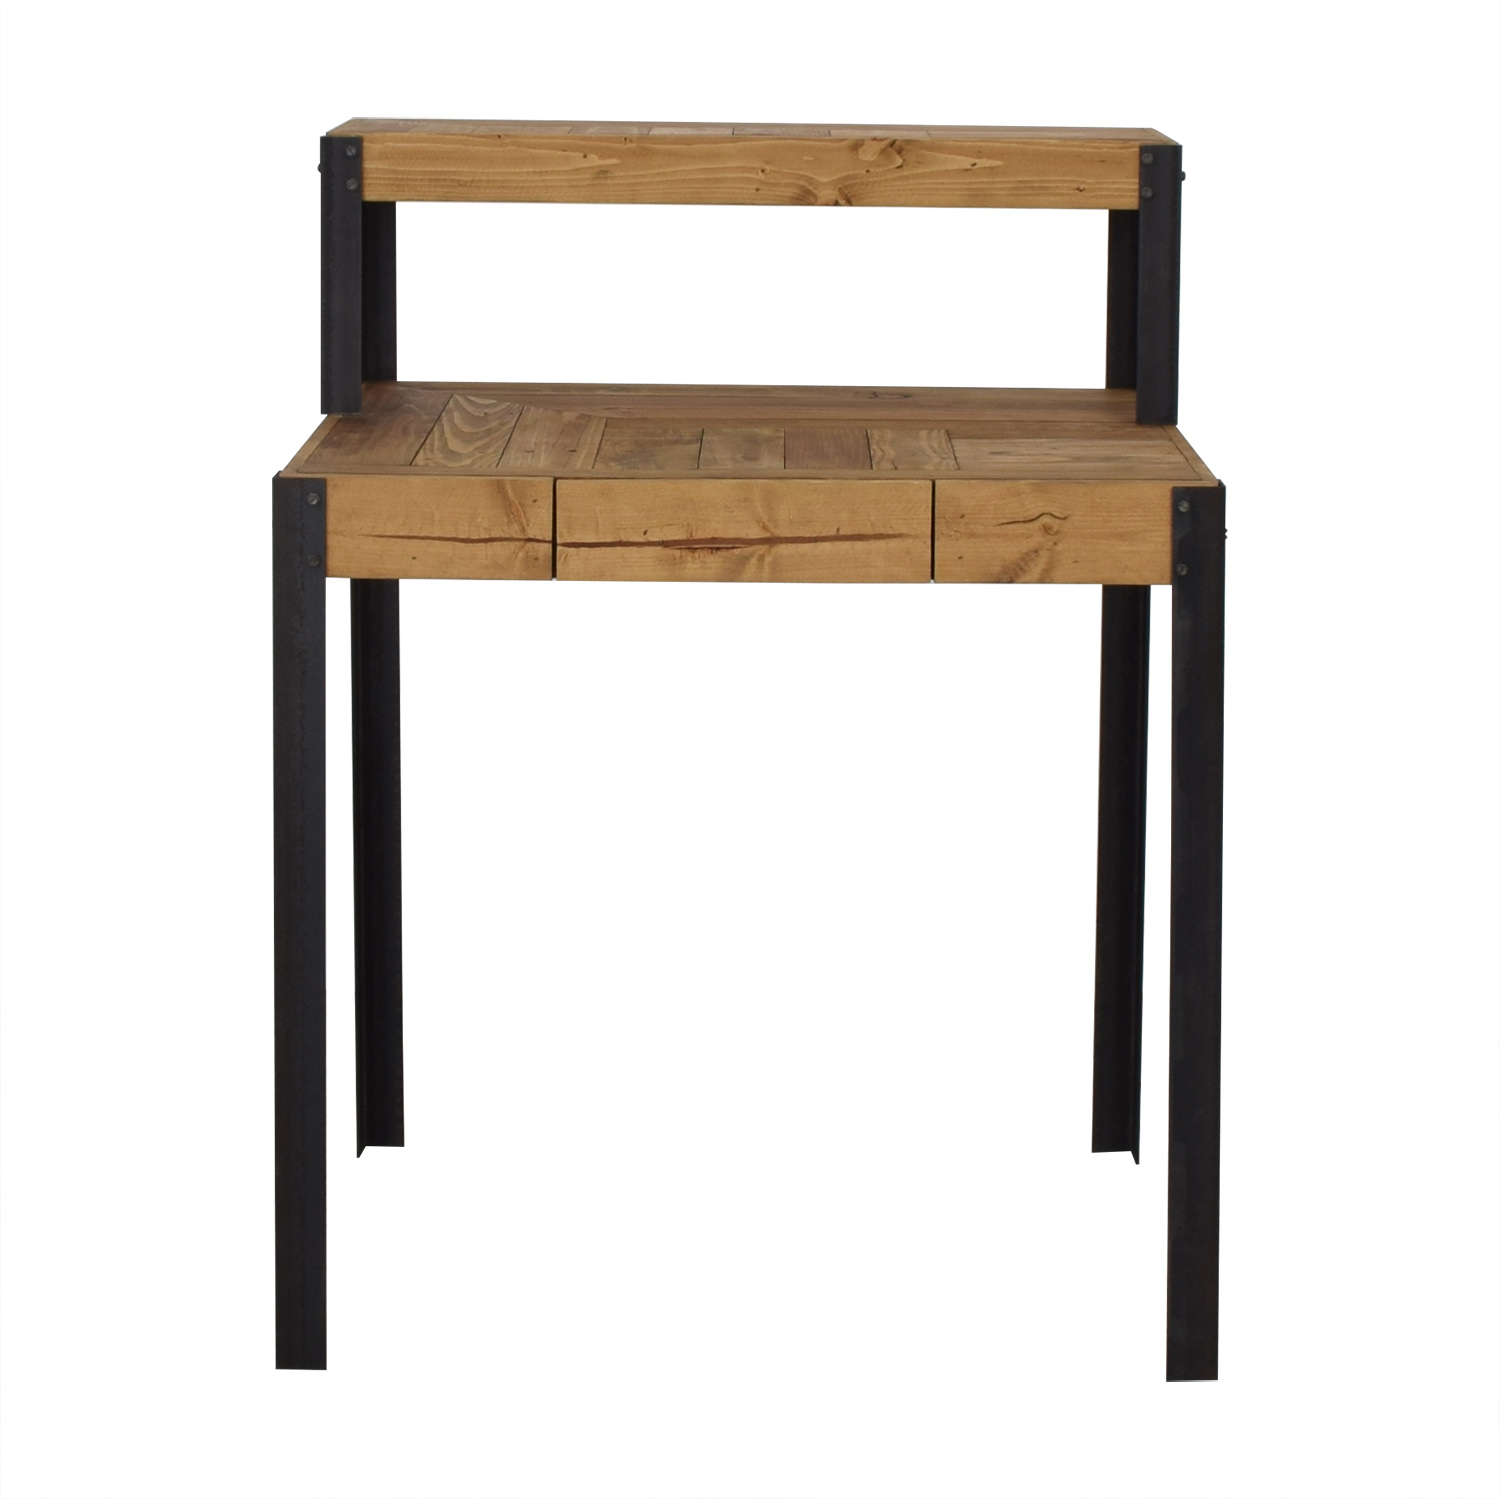 Reclaimed Wood Desk discount